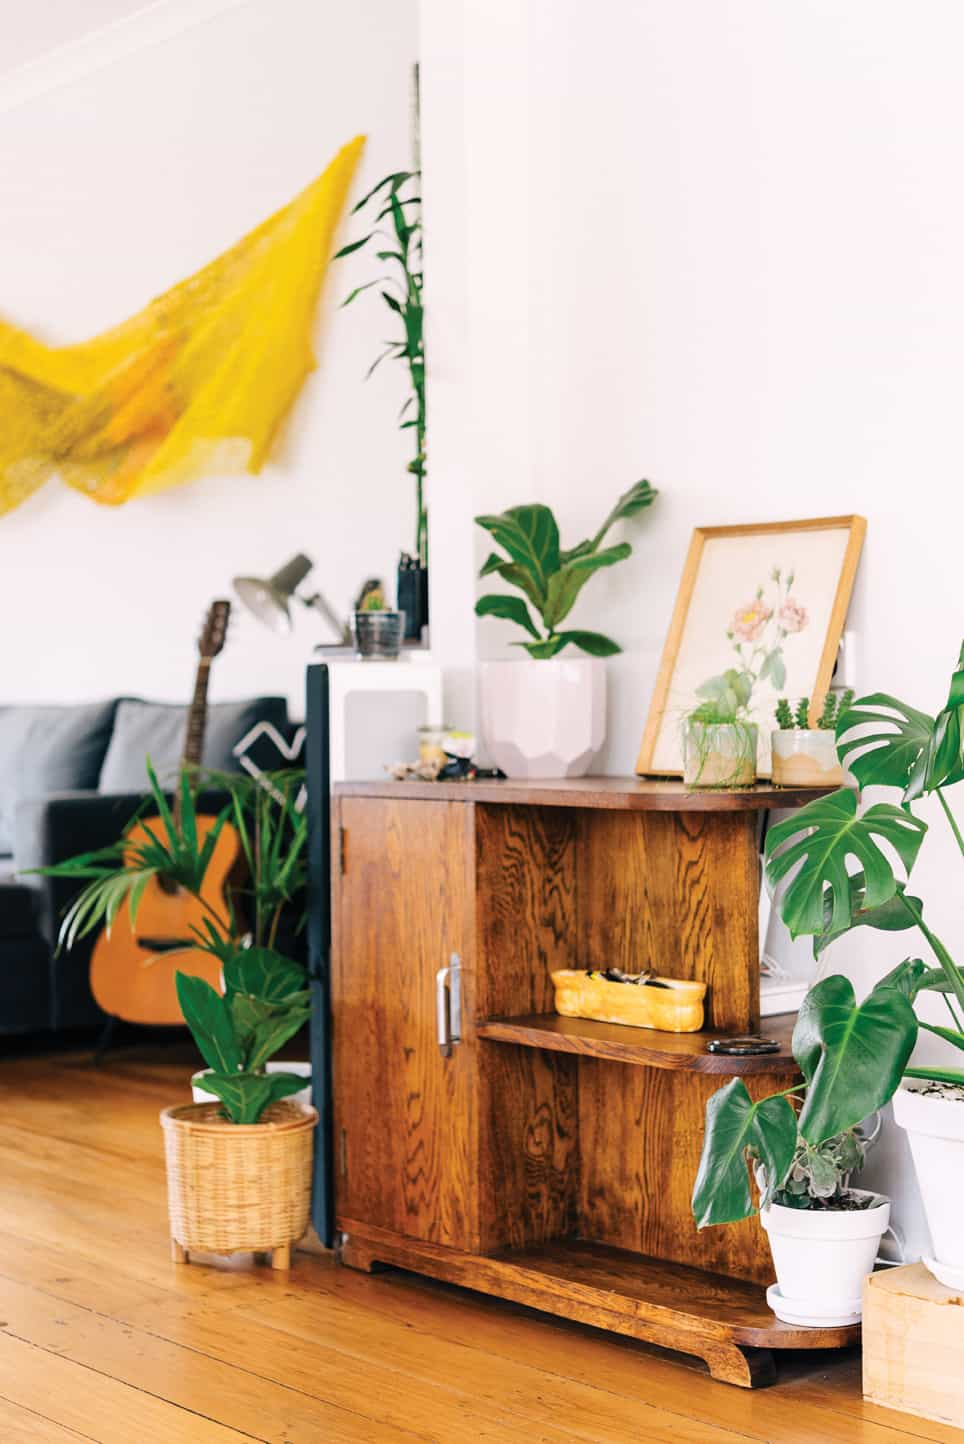 sill life plants homestyle 1